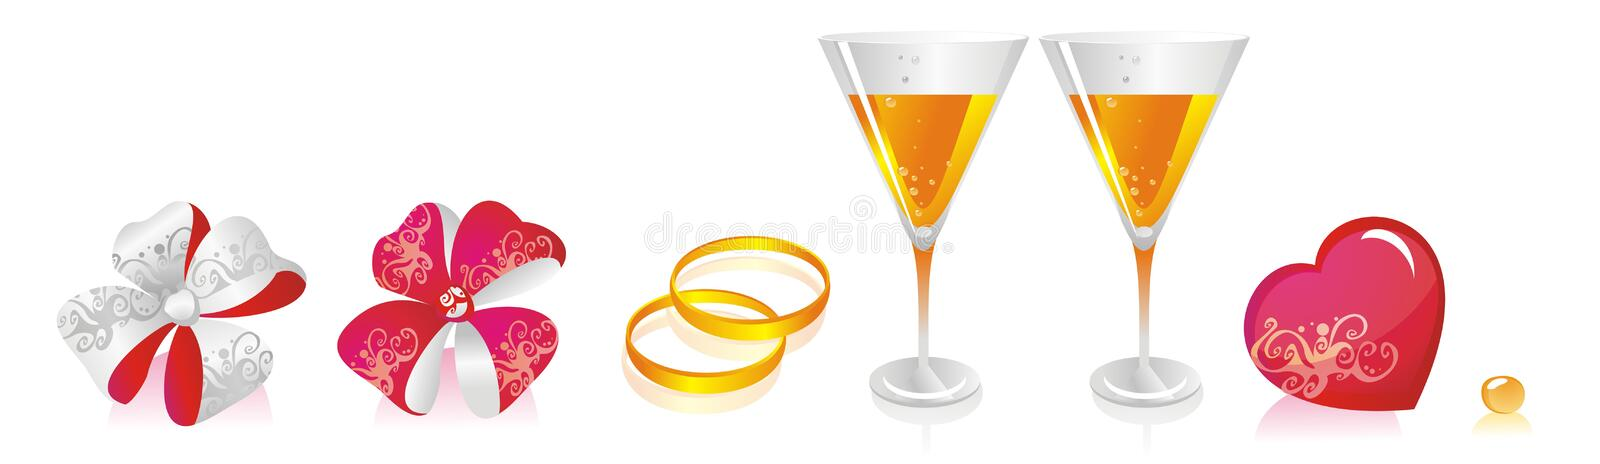 WeddingCollection. Holiday collection of wedding accessories stock illustration